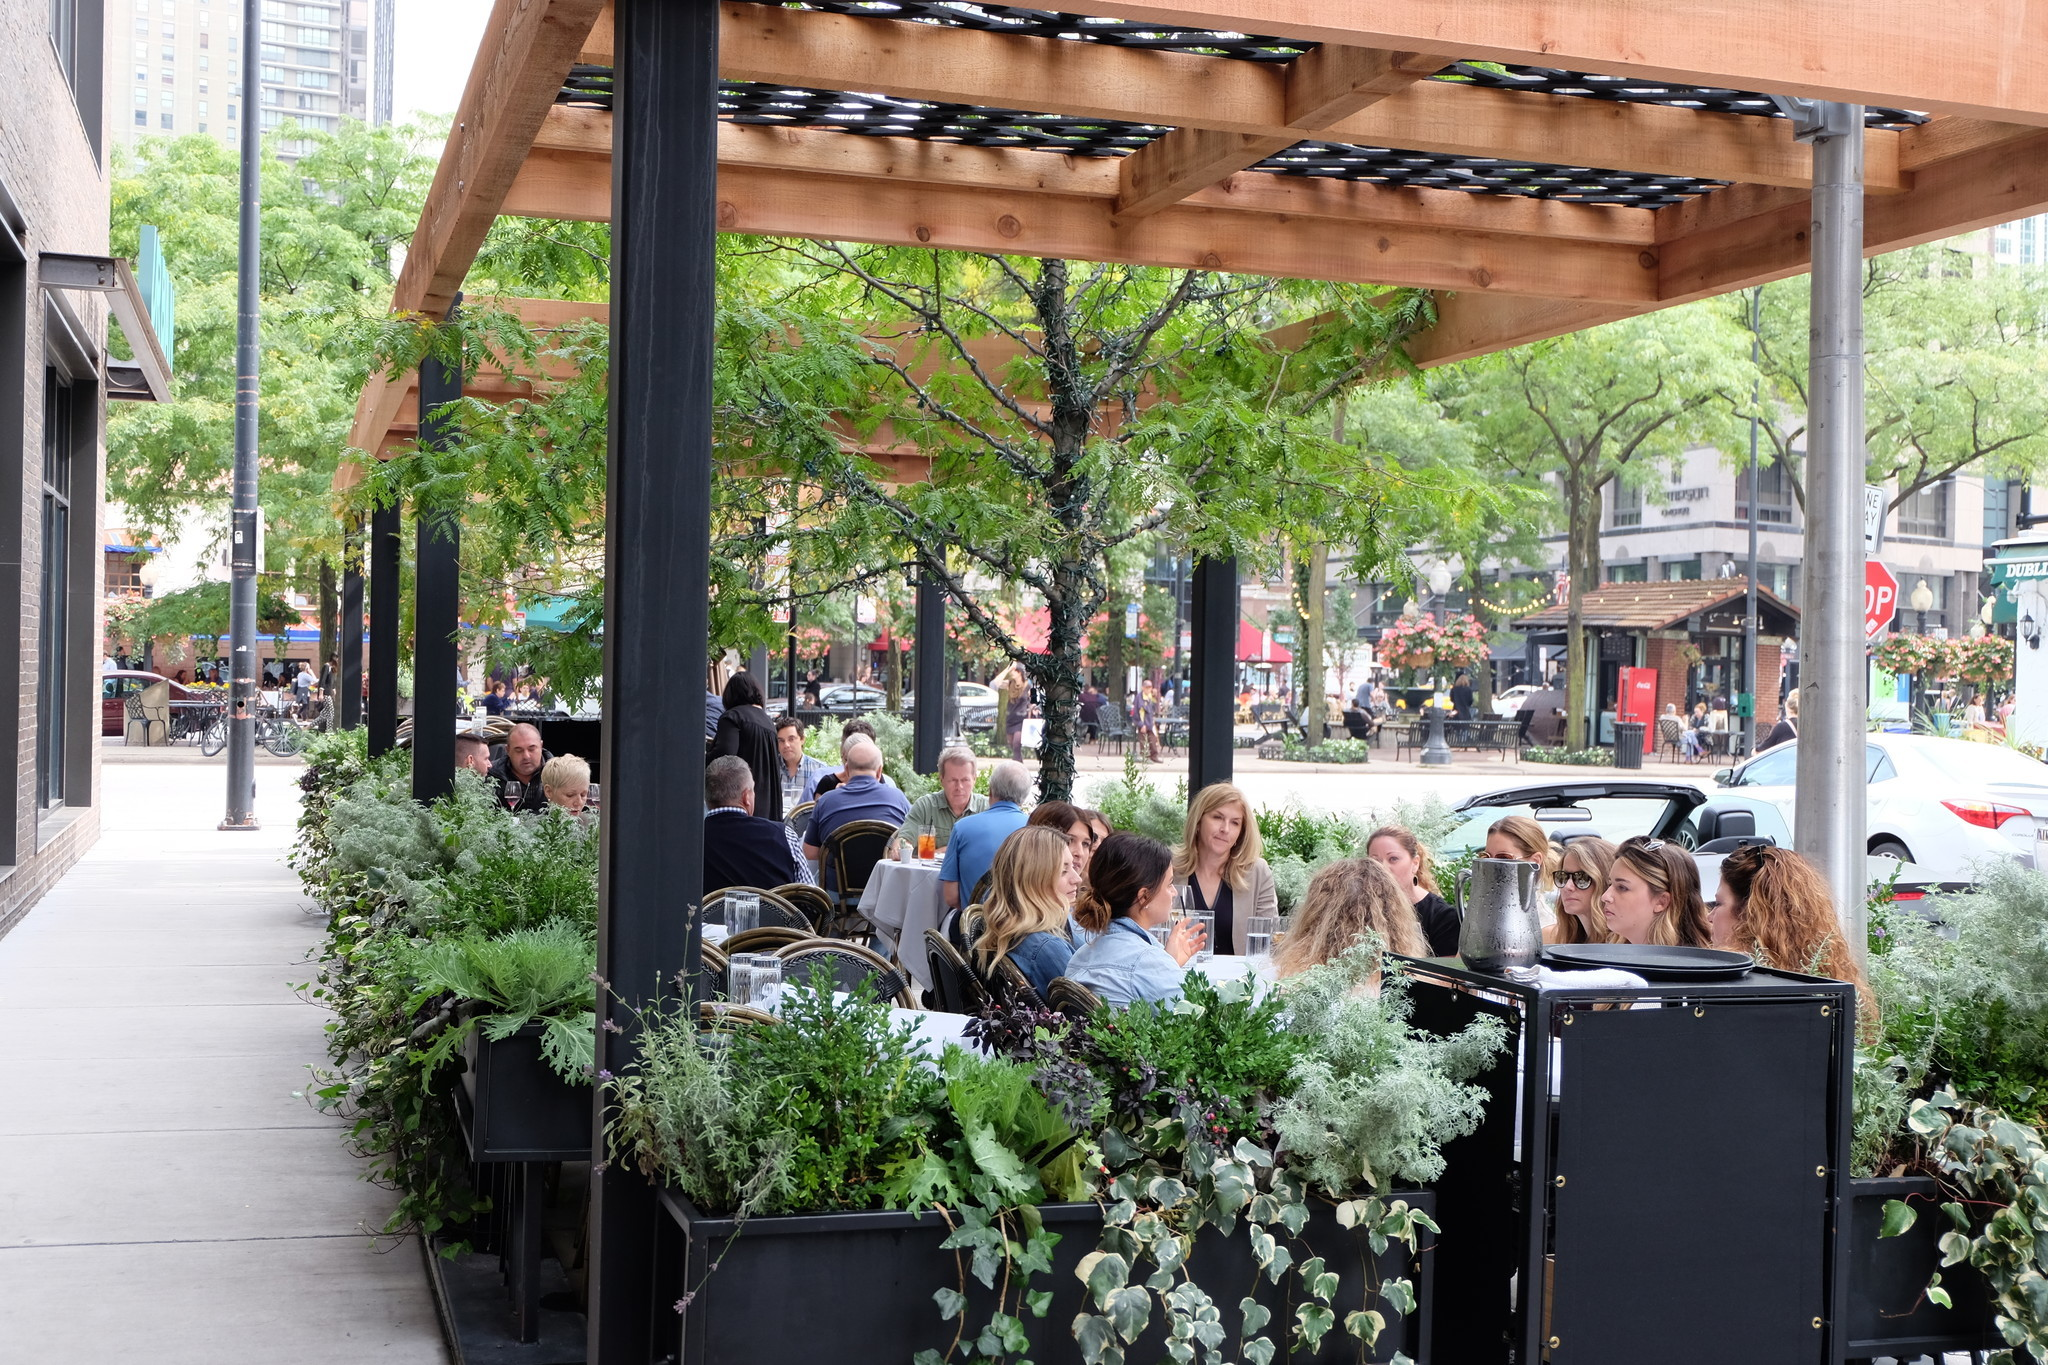 Get out there: 150-plus Chicago patios and rooftops for outdoor eating and drinking